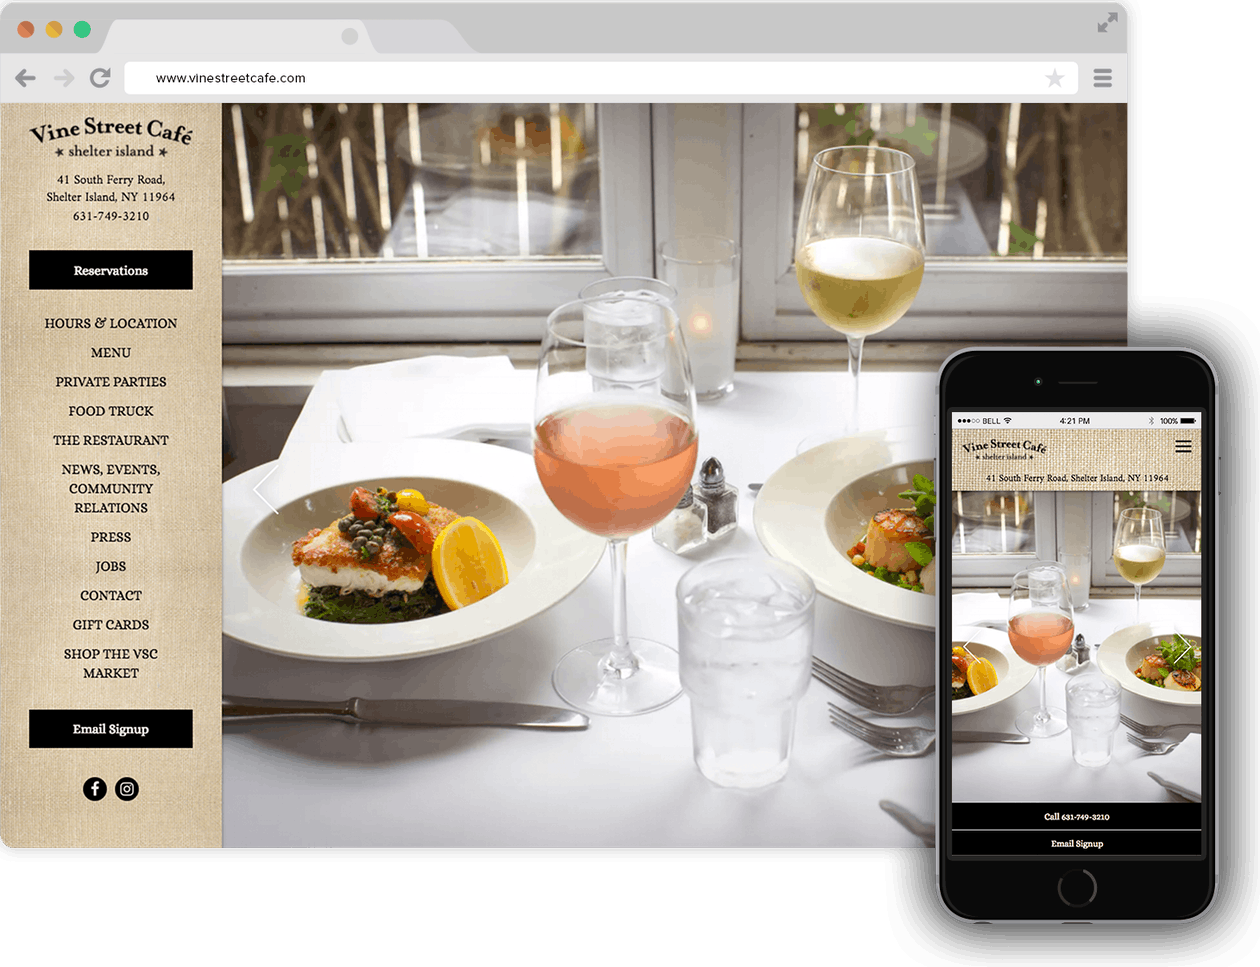 Vine Street Cafe homepage